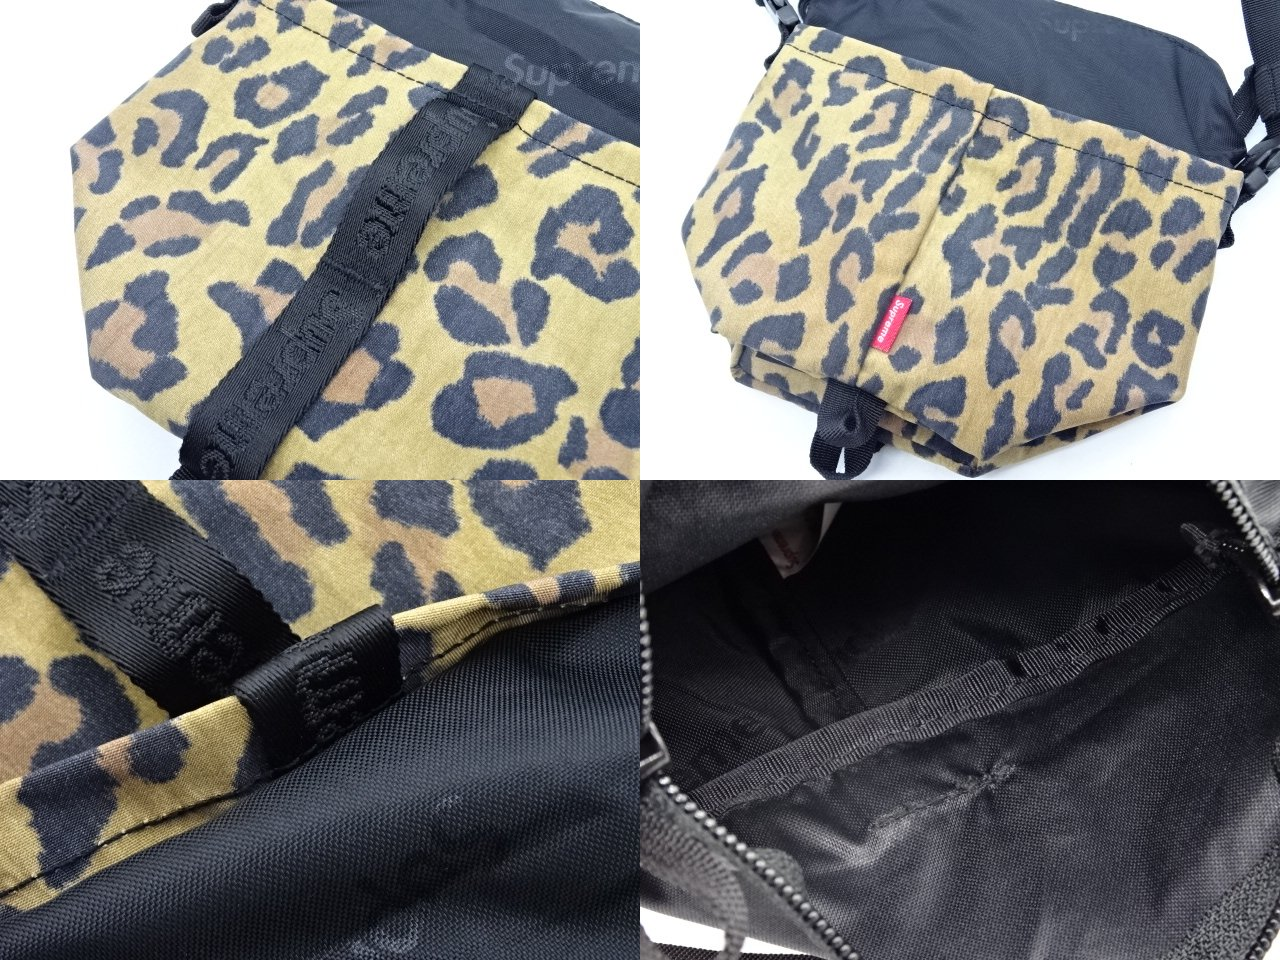 Supreme 20aw NECK POUCH LEOPARD ポーチ ショルダーバッグ レオパード ヒョウ柄 大名店【中古】